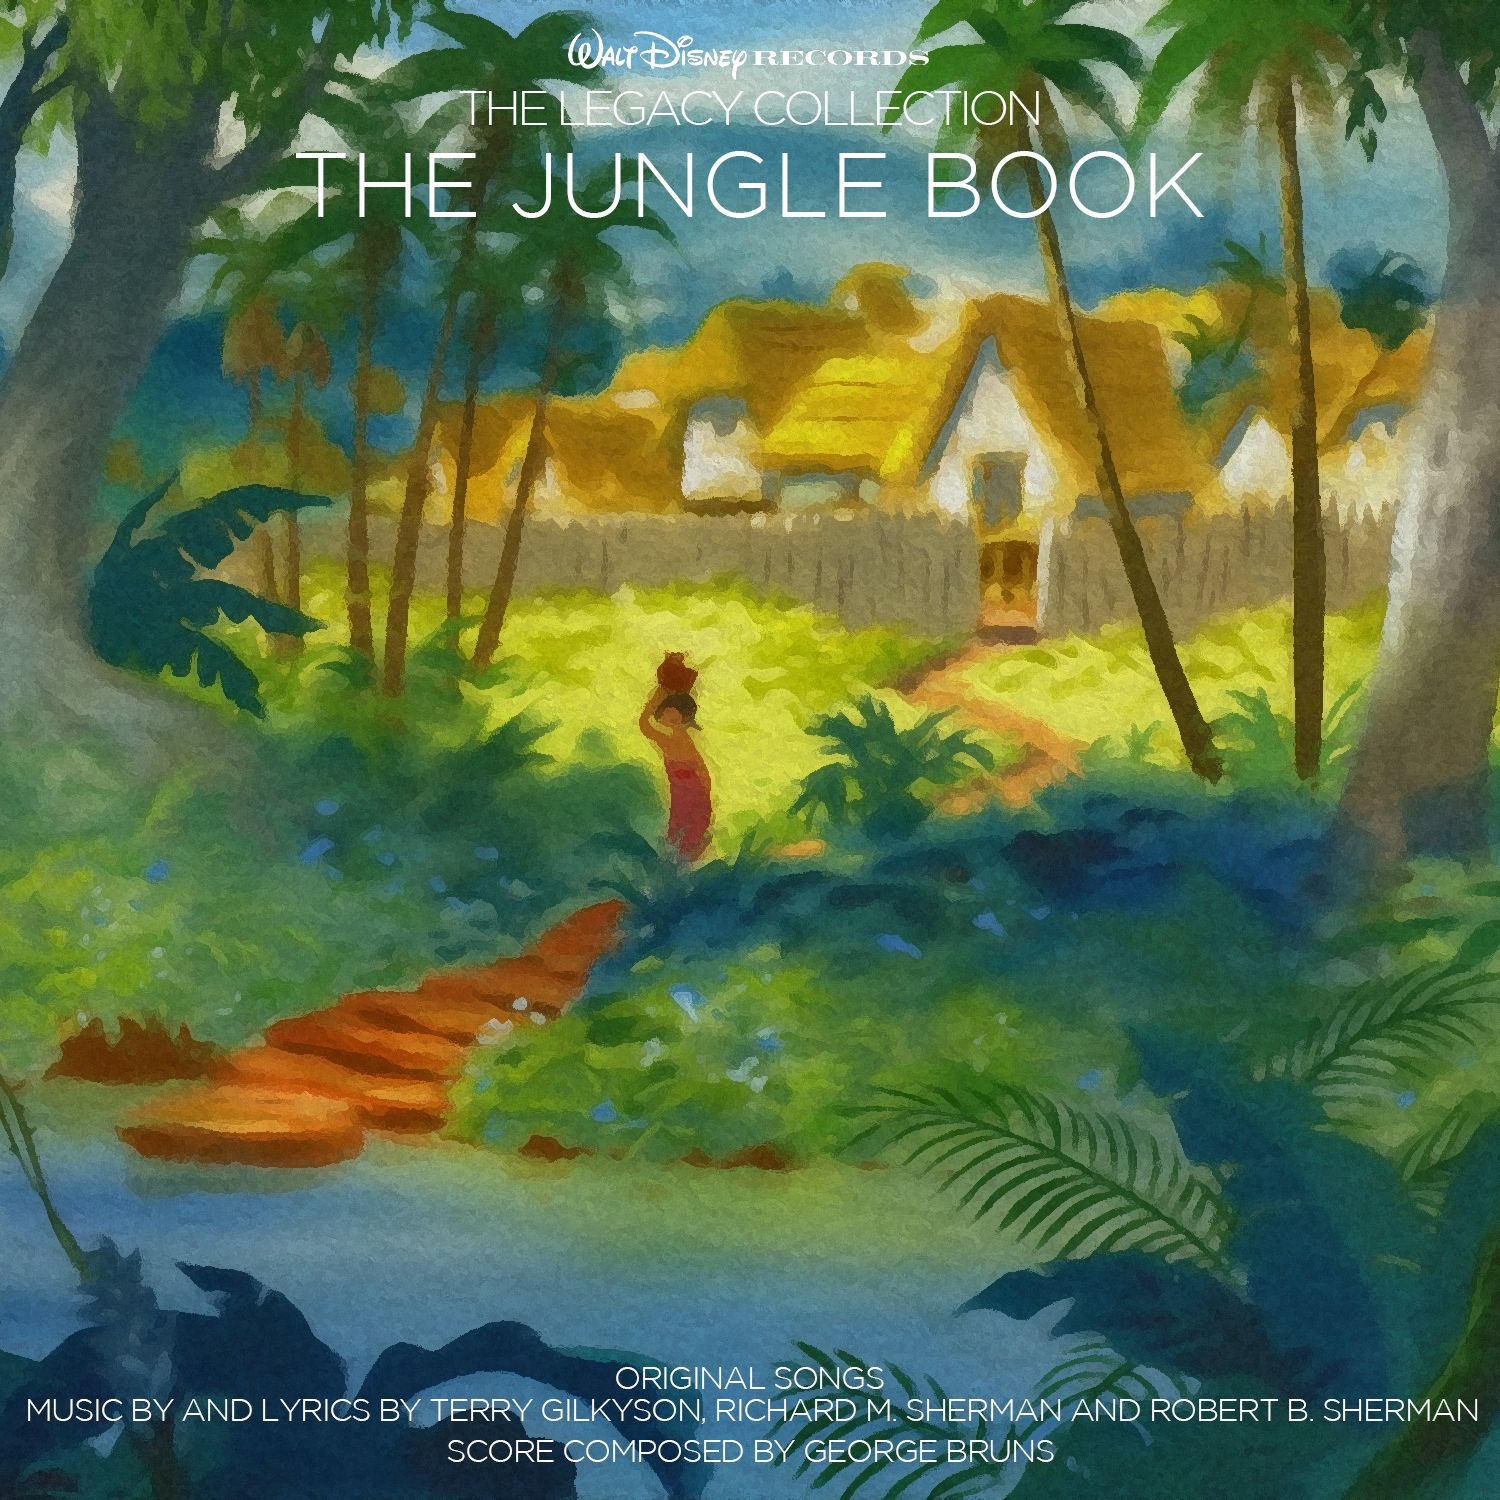 Custom Artwork For The Jungle Book In The Style Of Disney S The Legacy Collection I Used Concept Art From Th Custom Artwork Painting Illustration Disney Art